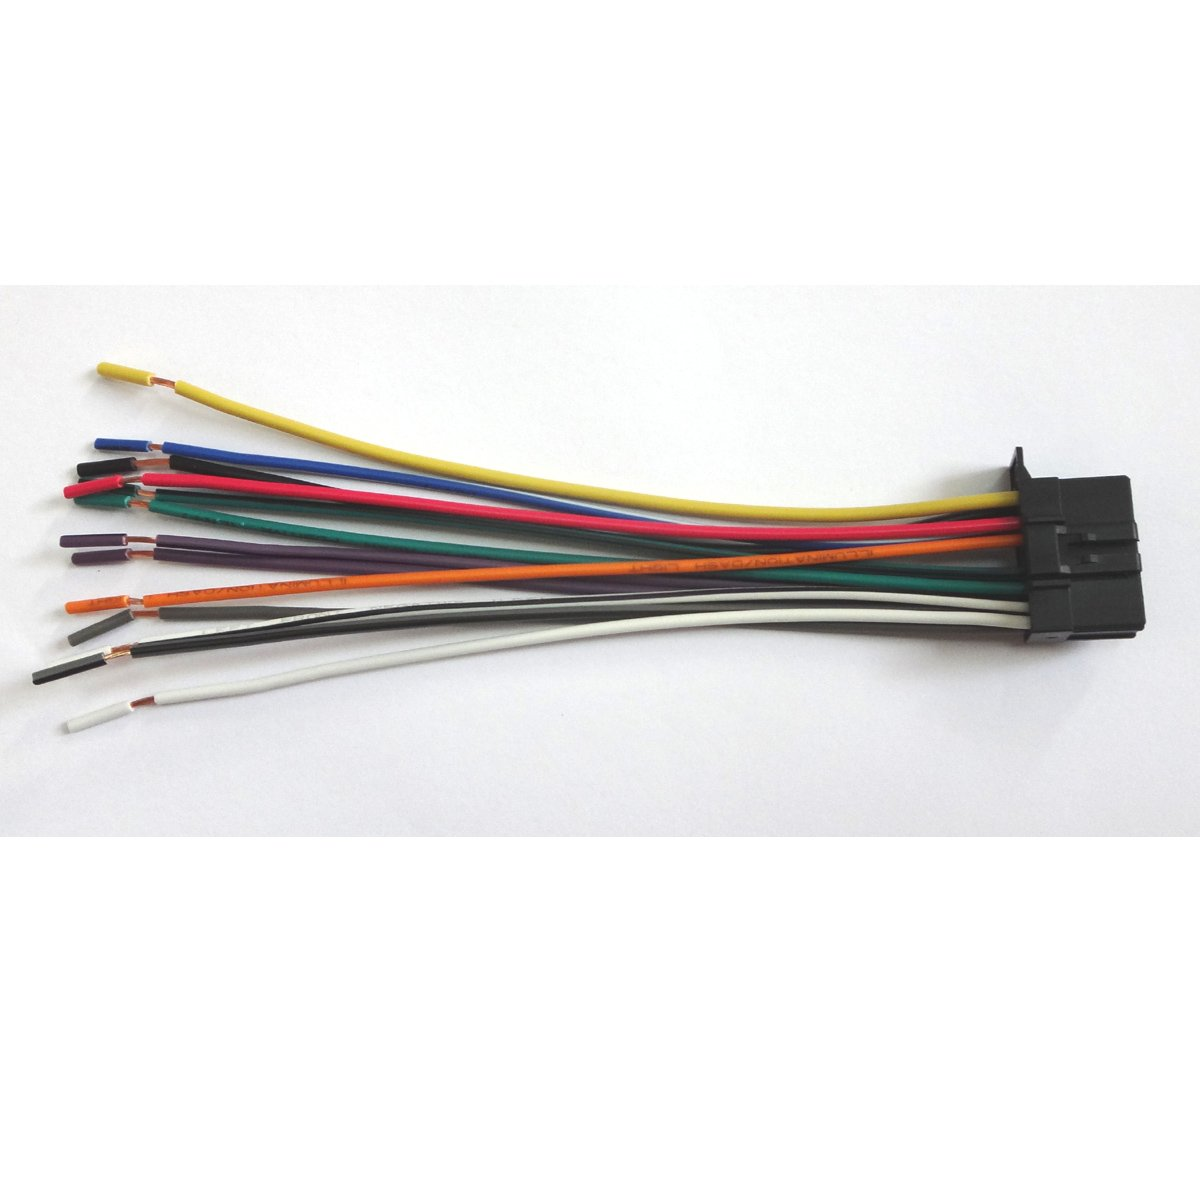 613jyQzY LL._SL1200_ amazon com for pioneer wire harness deh 12e deh 22ub deh 2200ub pioneer deh-12e wiring harness at gsmx.co